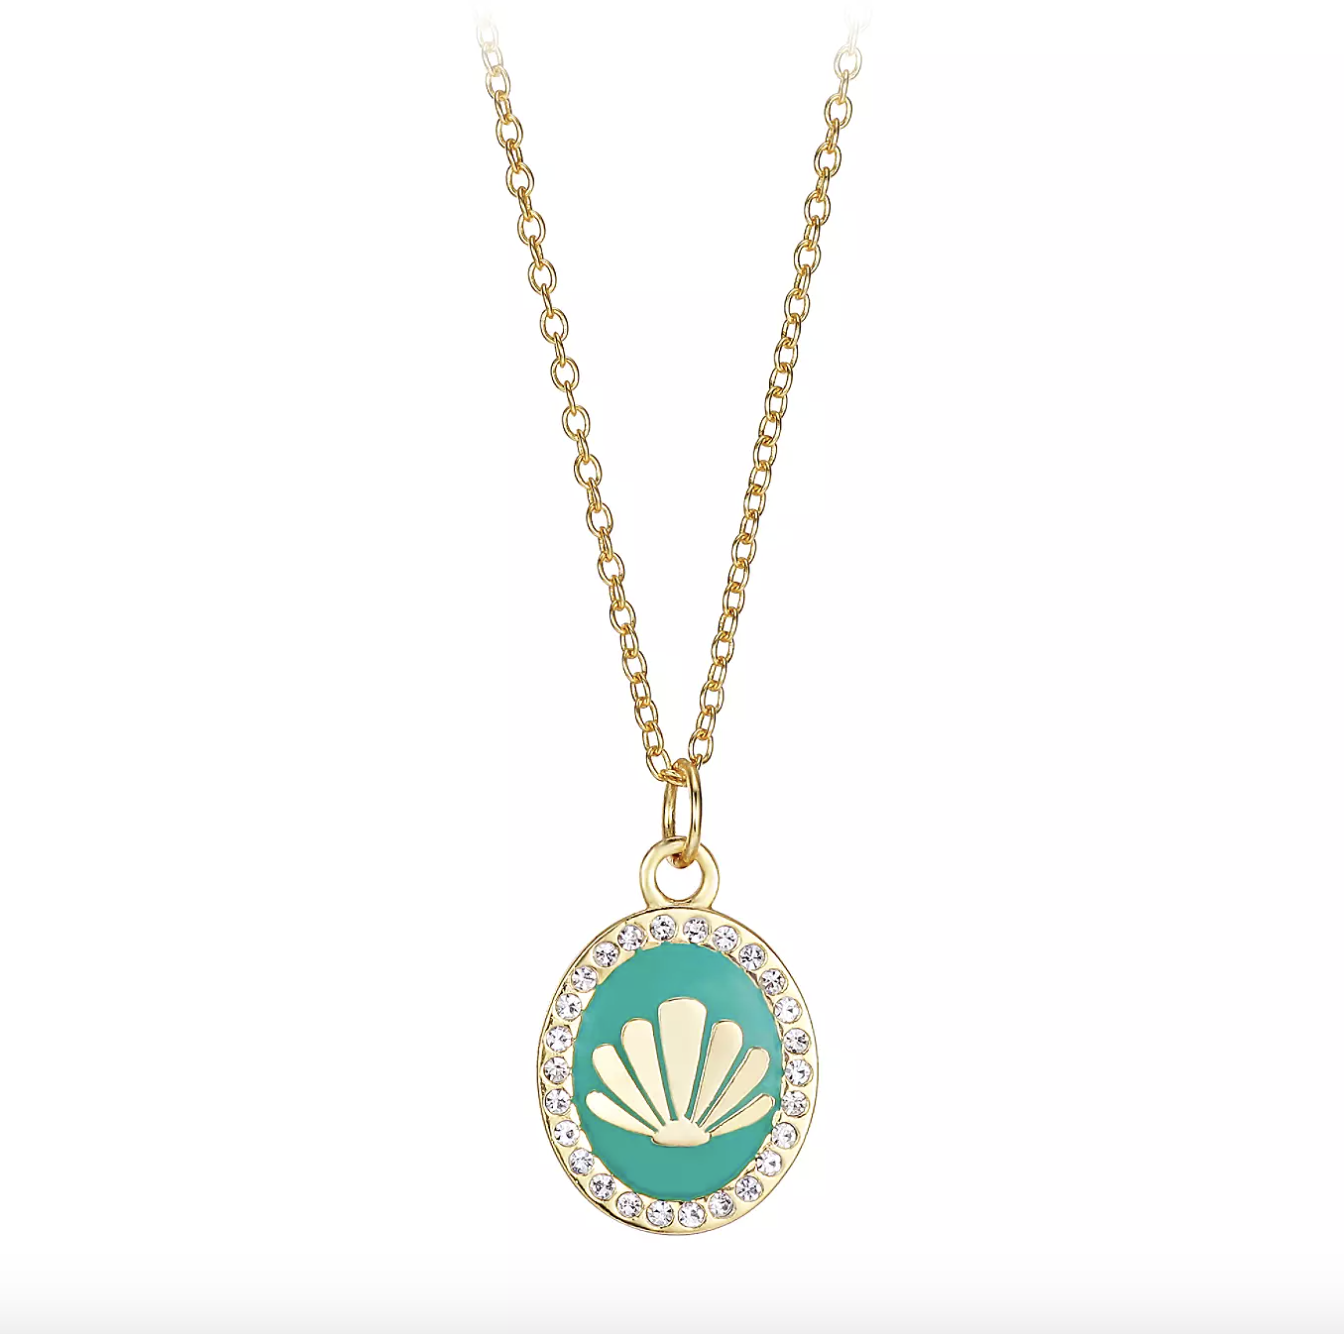 the gold necklace, which has a green enamel pendant with crystal accents and an embossed gold shell in the center